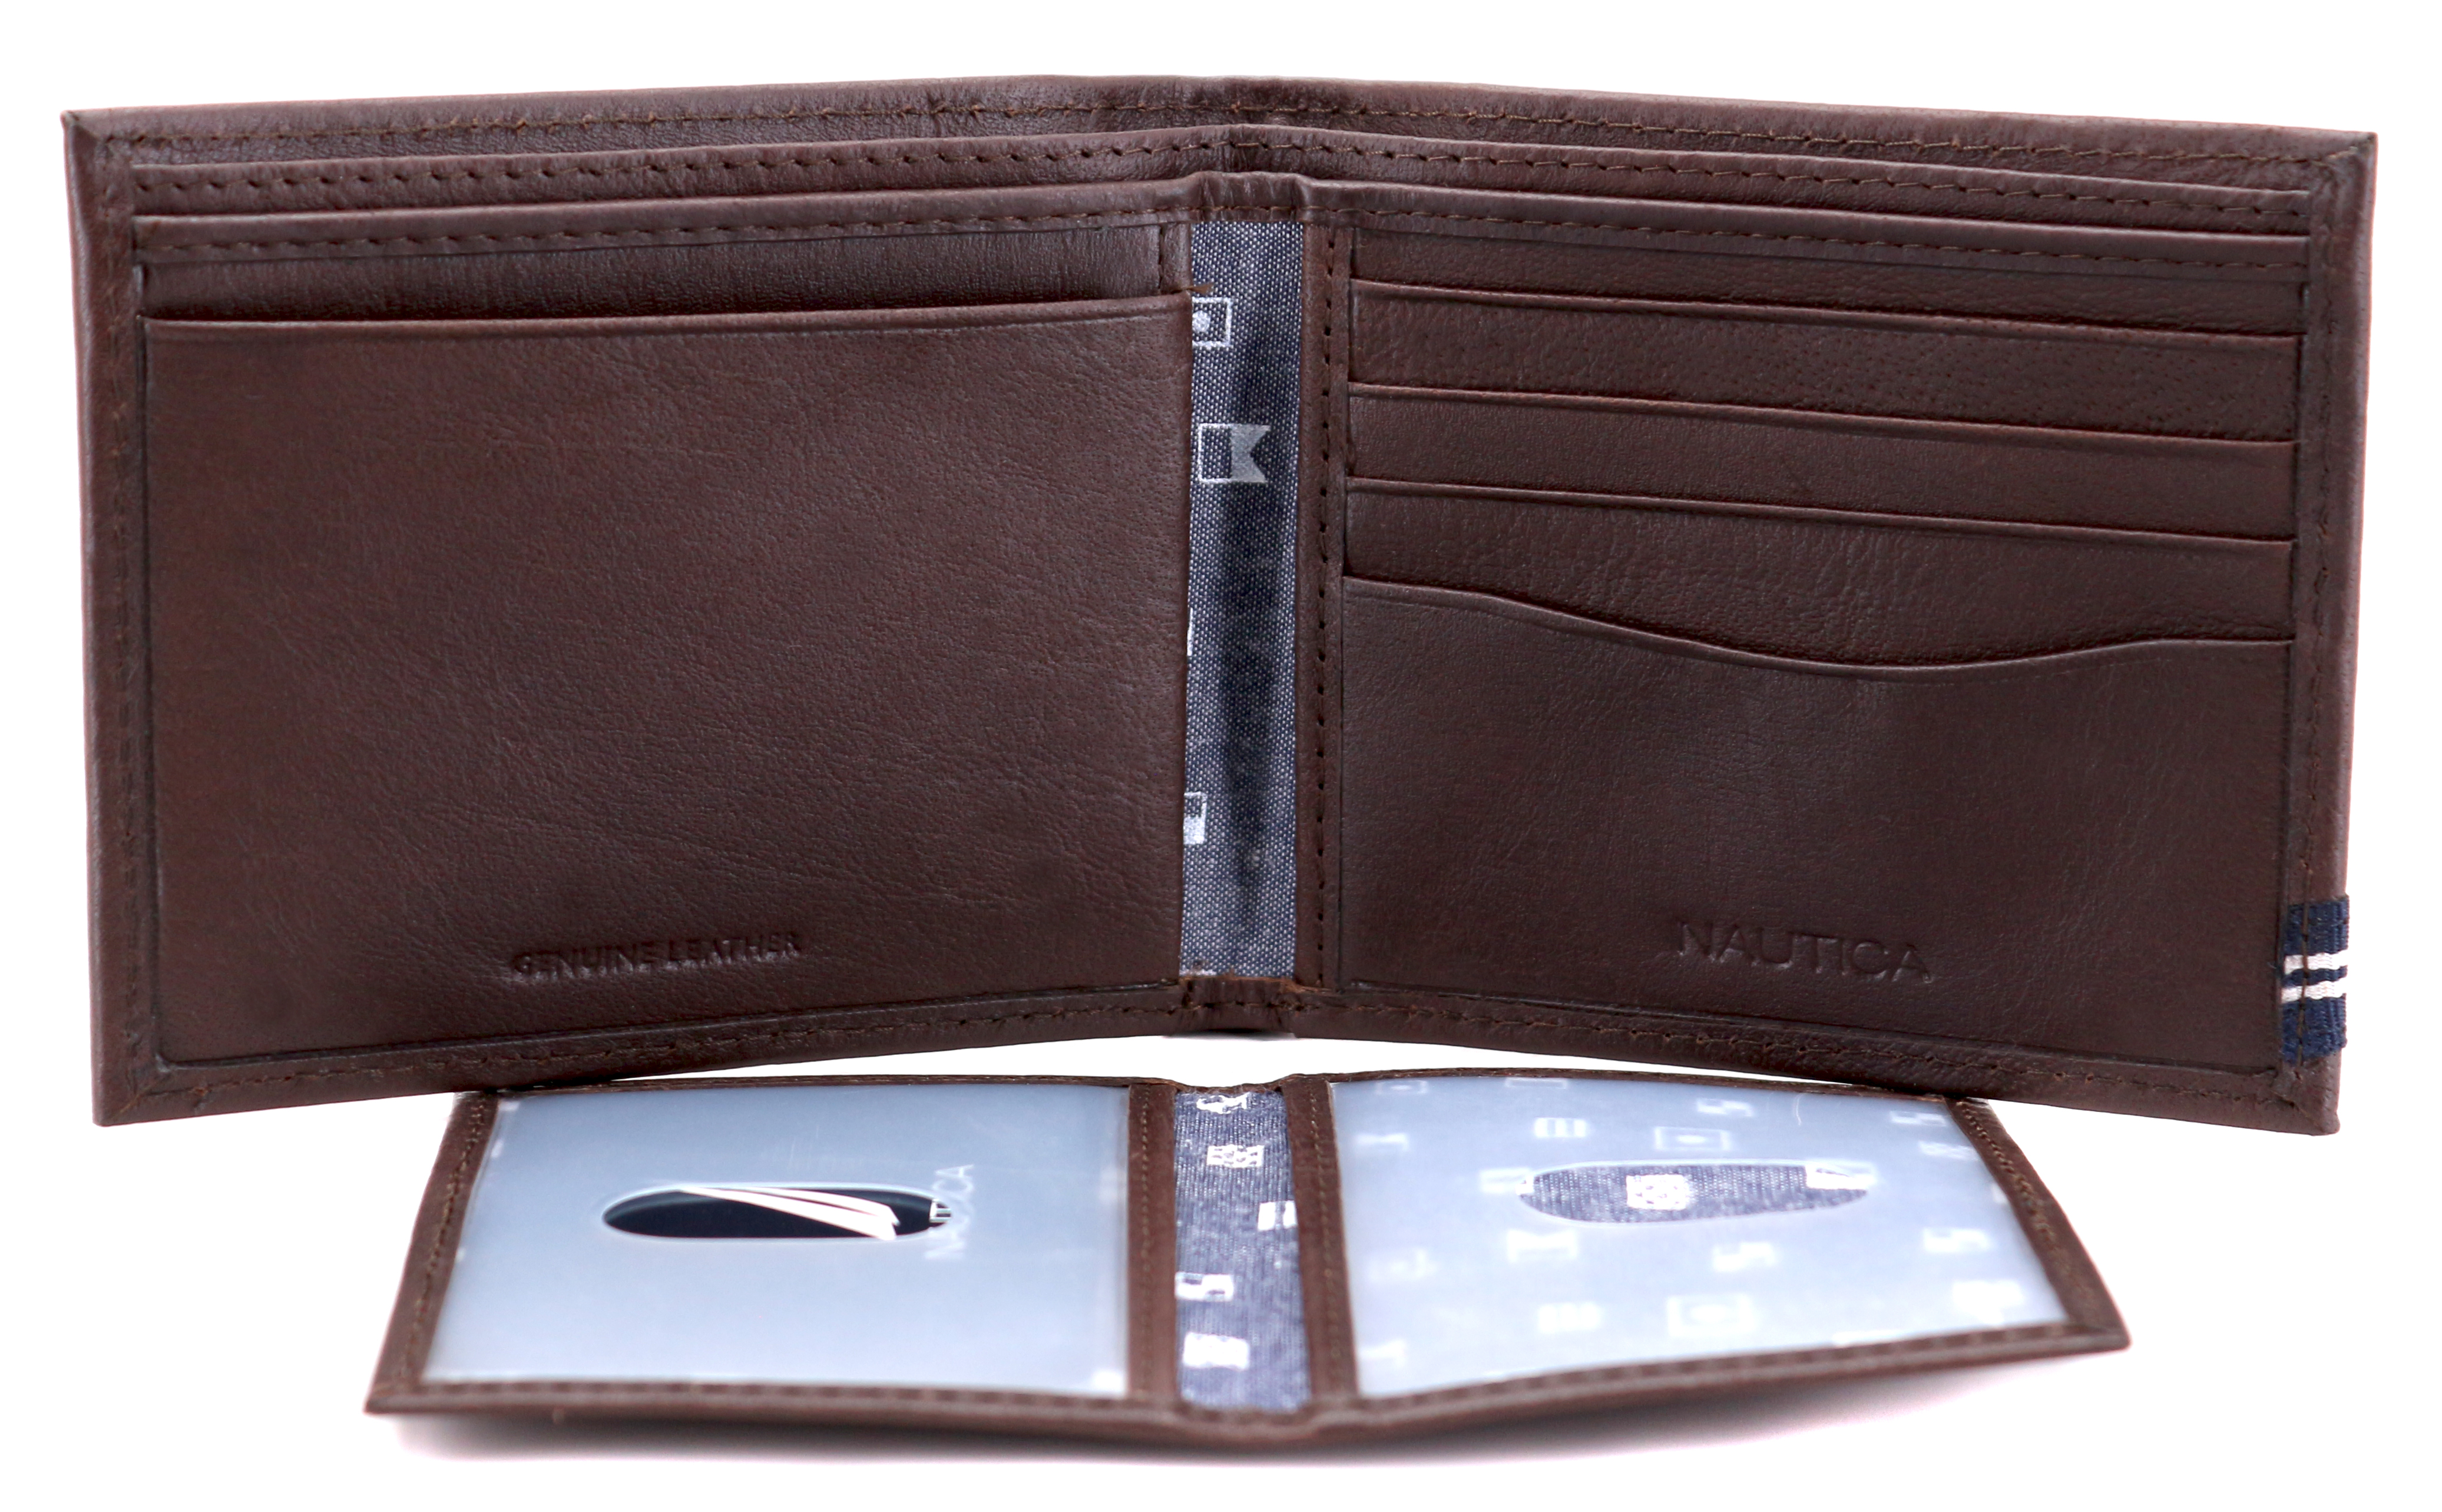 Nautica-Men-039-s-Genuine-Leather-Credit-Card-ID-Double-Billfold-Passcase-Wallet thumbnail 17